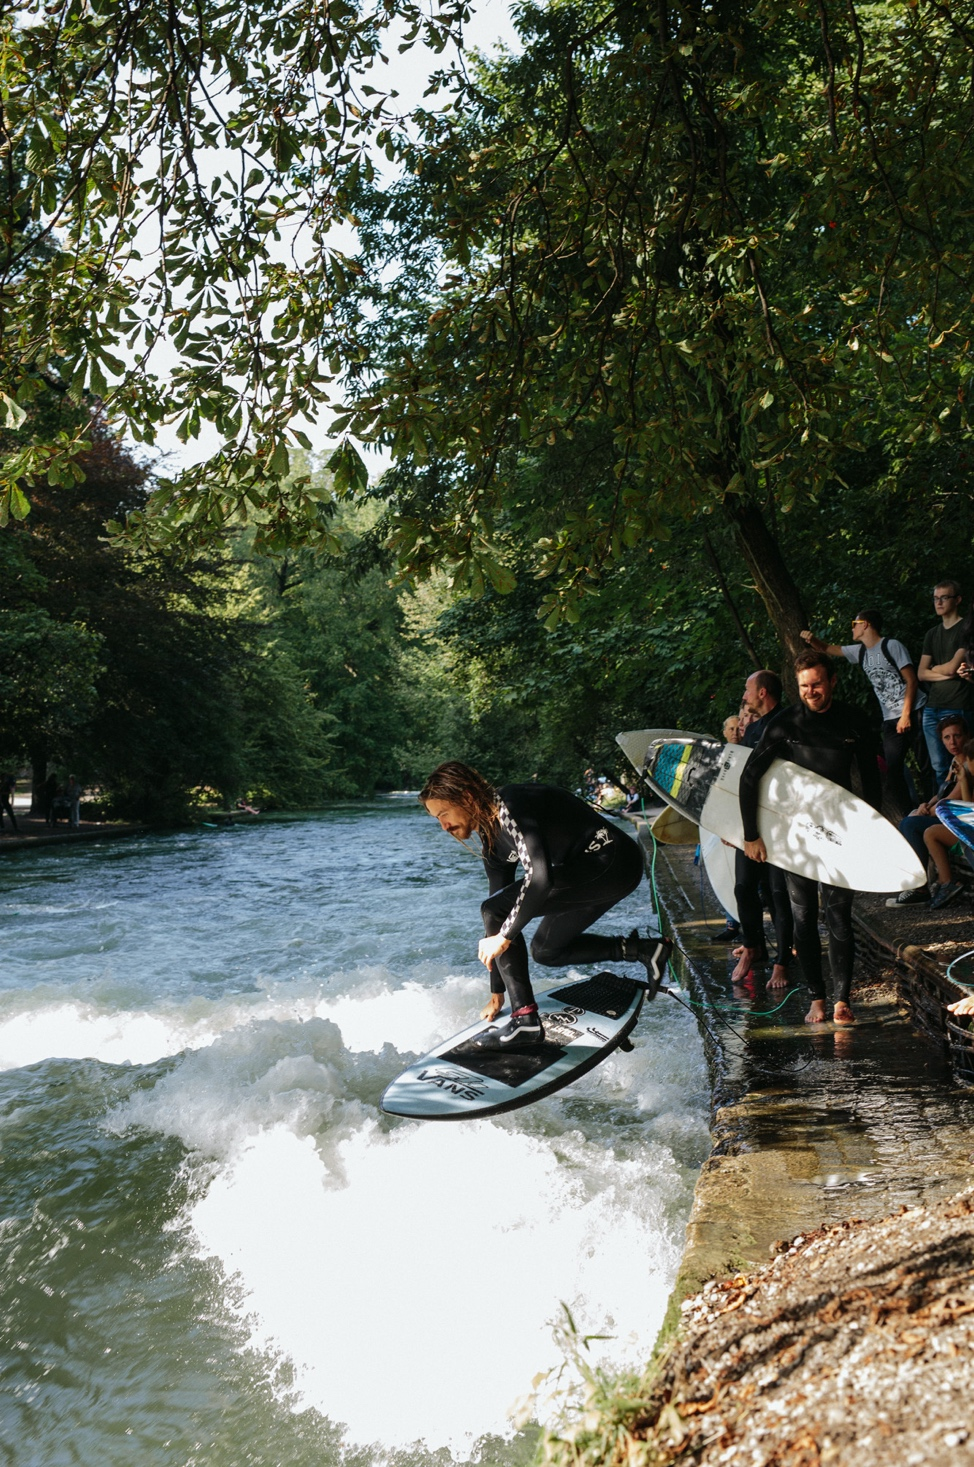 """The """"mini ramp etiquette"""" illustrated by Dylan Graves at The Eisbach."""